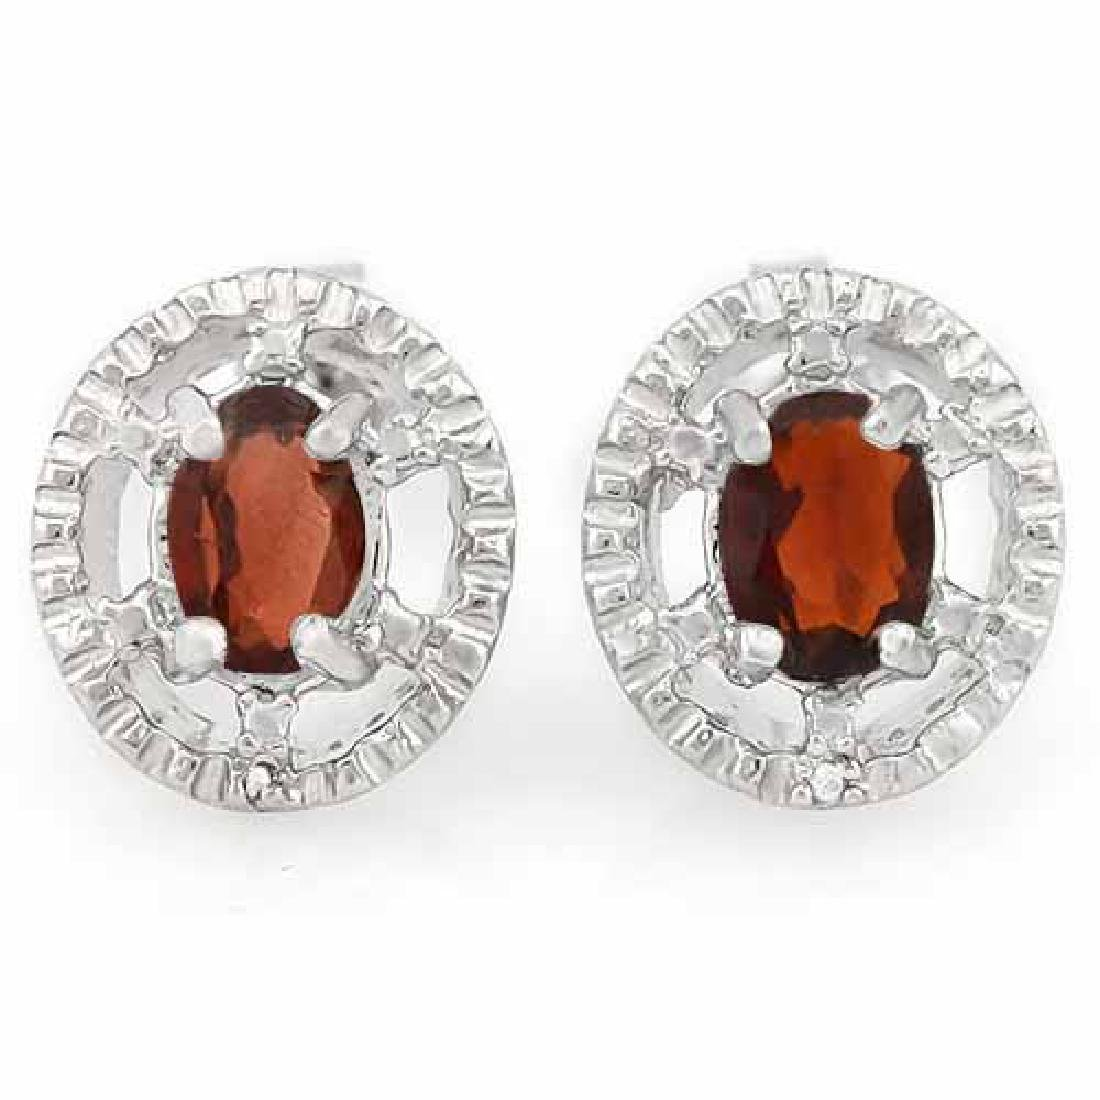 1 CARAT GARNET & DIAMOND 925 STERLING SILVER EARRINGS